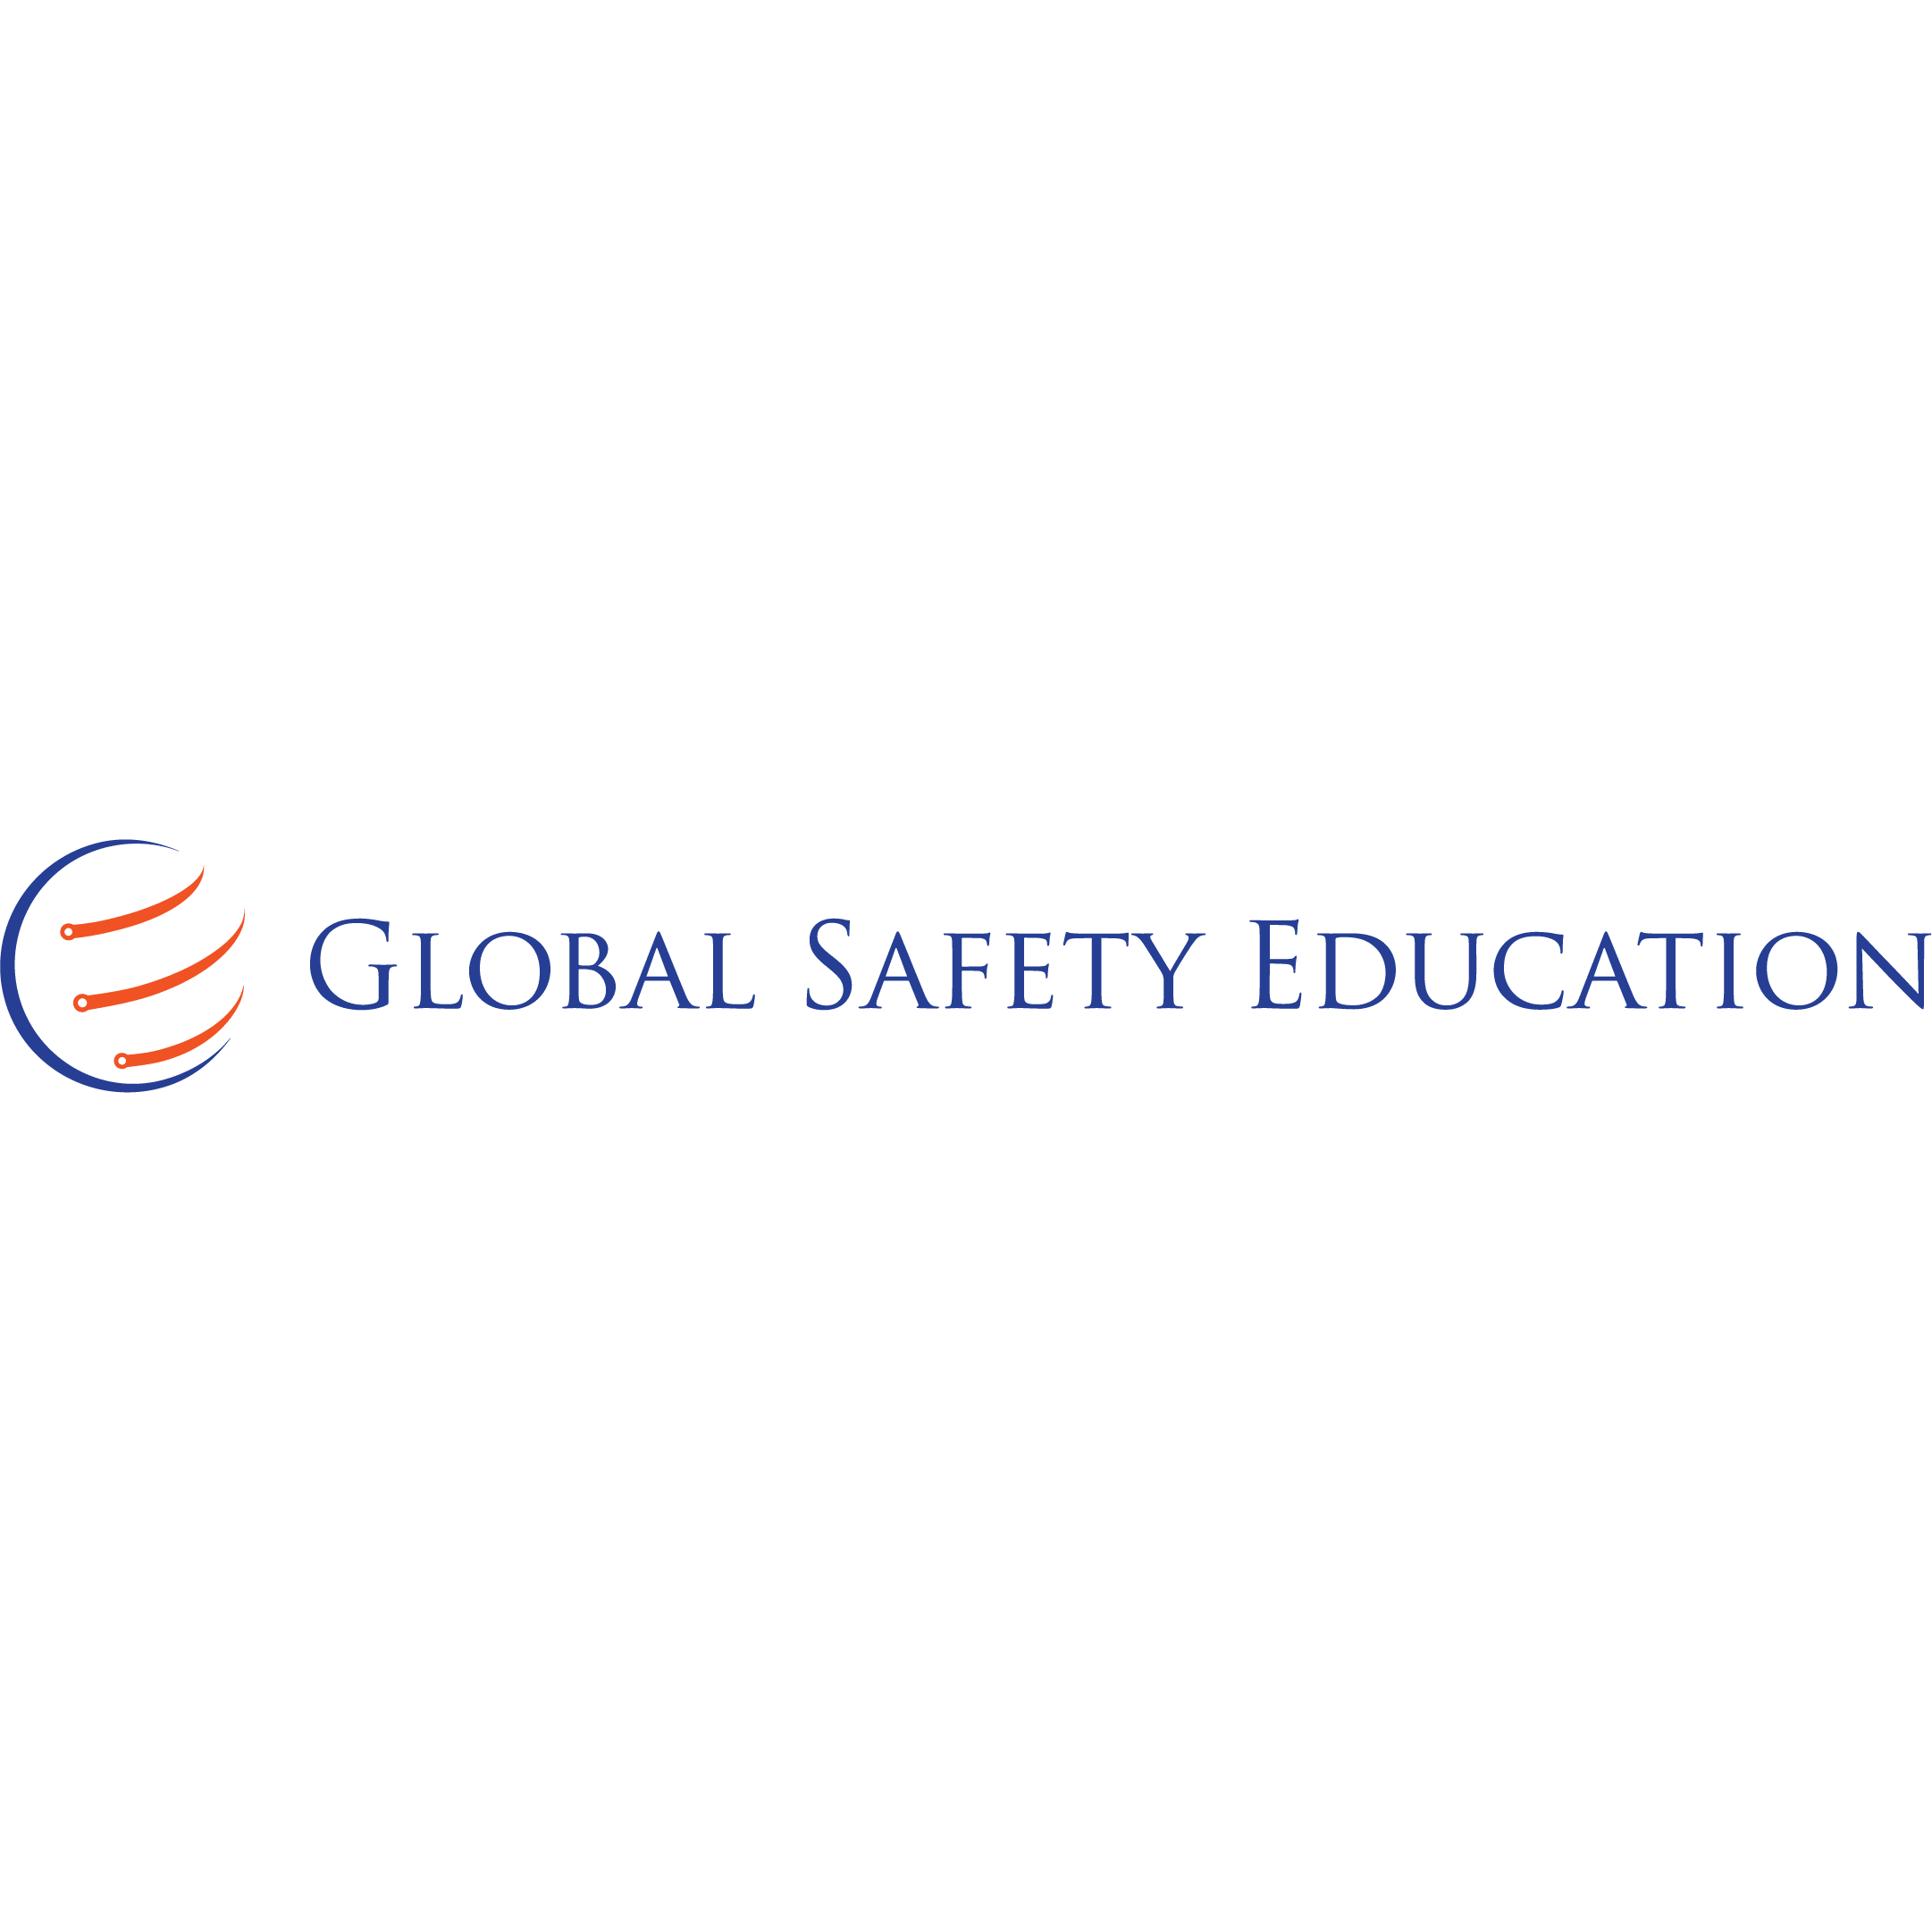 Global Safety Education, LLC